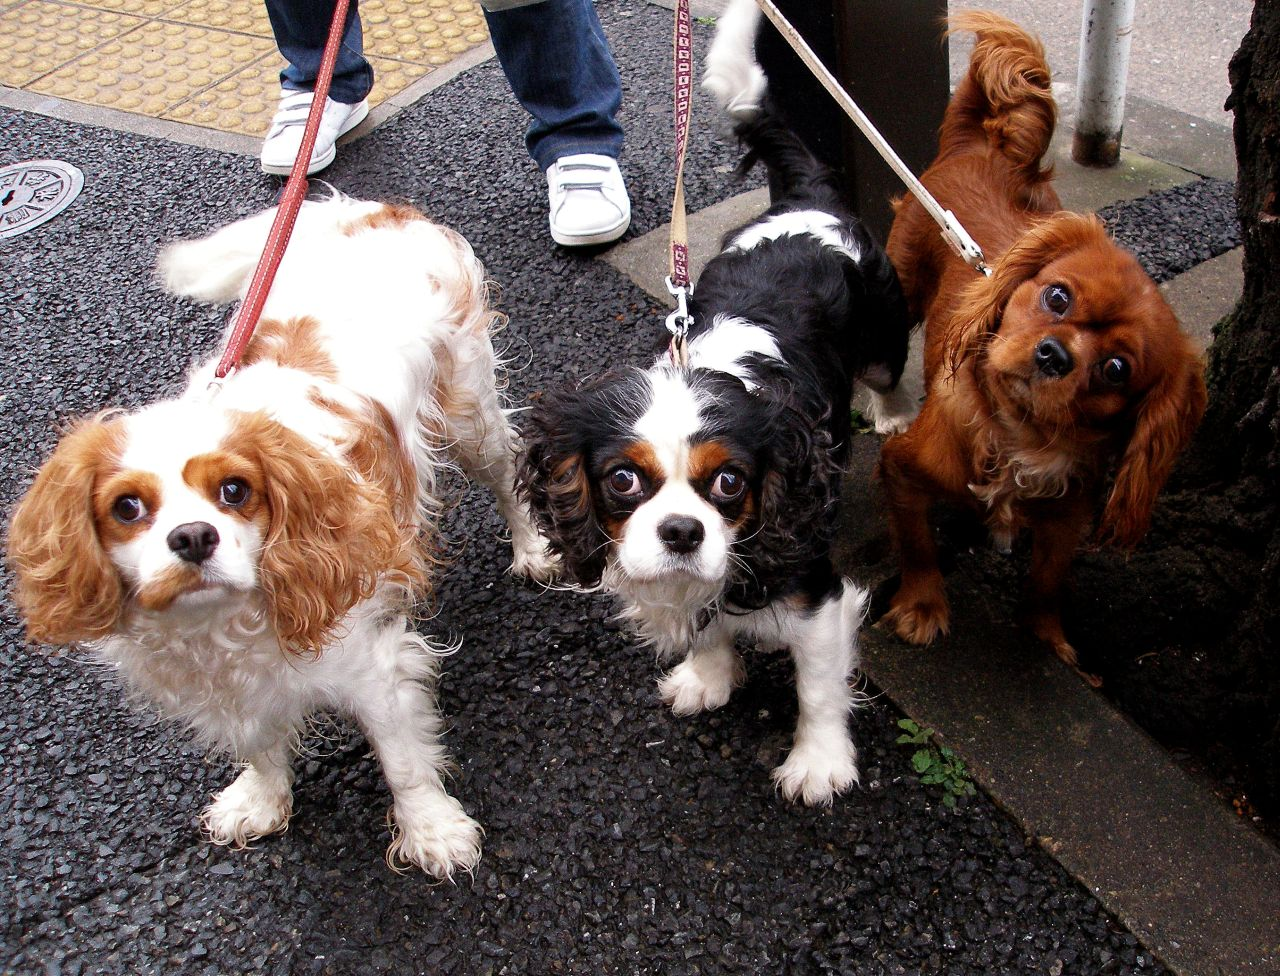 Add photos Three King Charles Spaniel dogs in your blog: